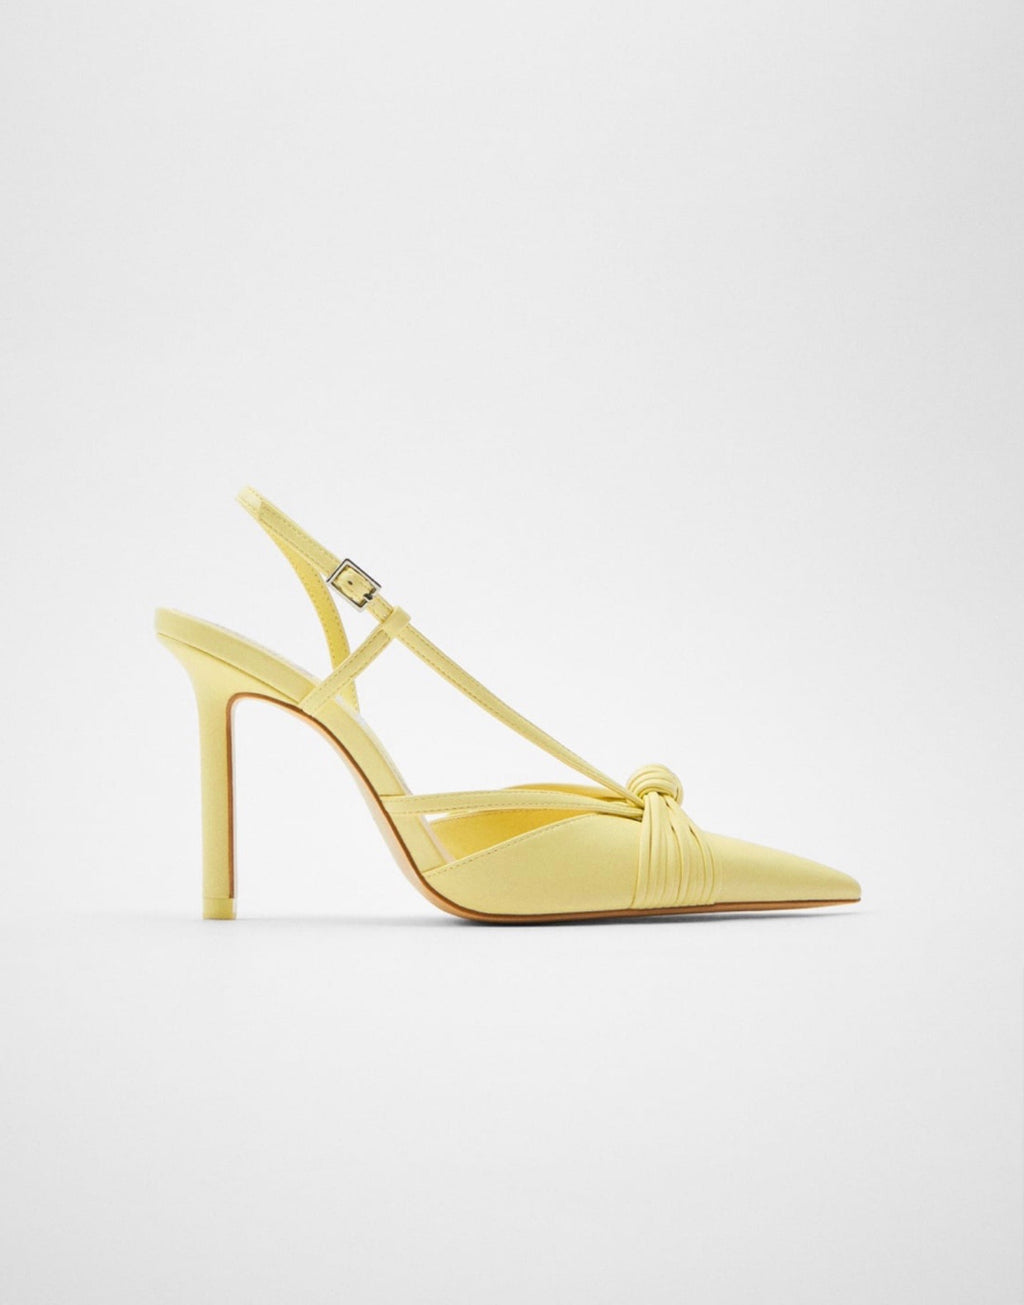 ZARA YELLOW HIGH HEEL SHOES WITH KNOTS